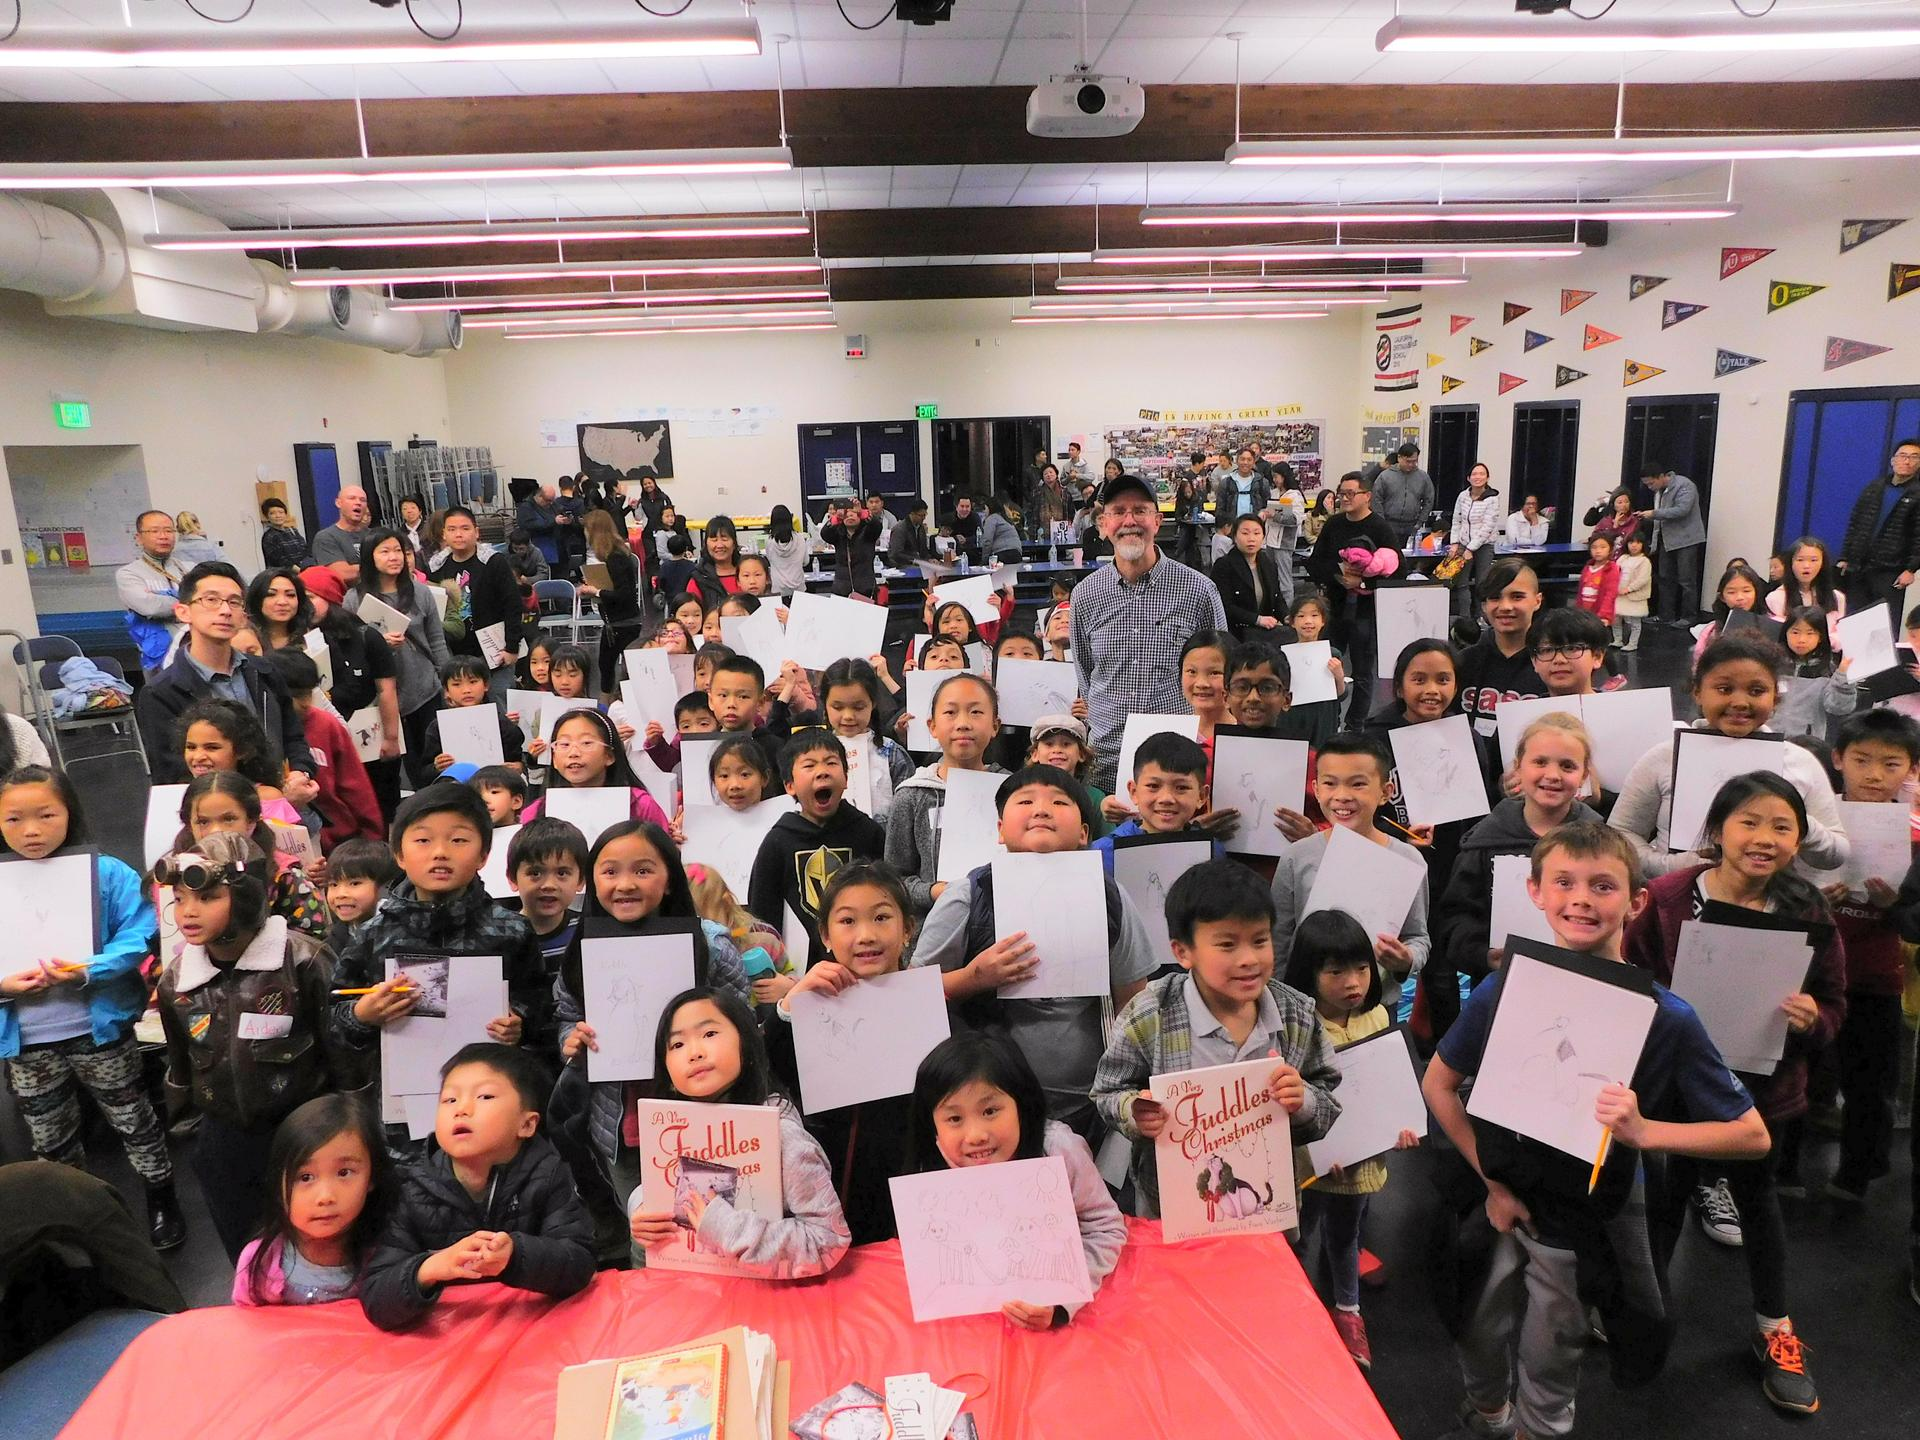 Author and illustrator Frans Vischer with Longley Way Elementary School students